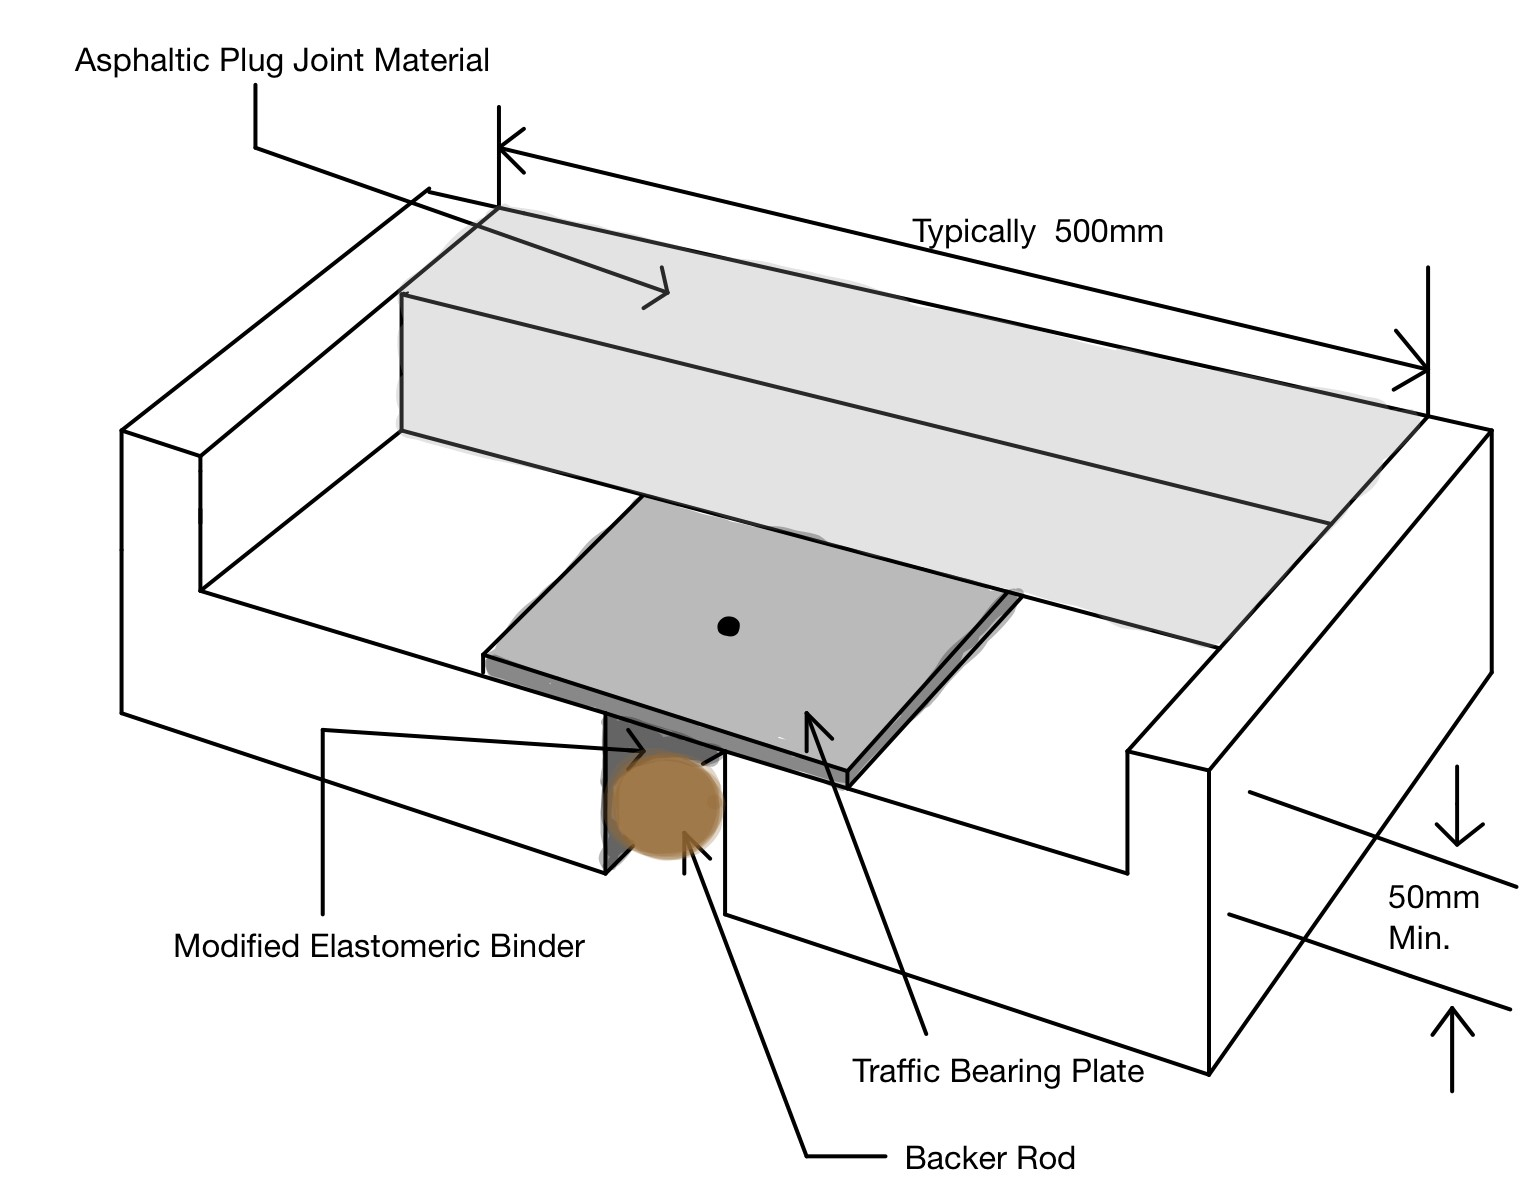 Asphaltic Plug Joints (APJ)